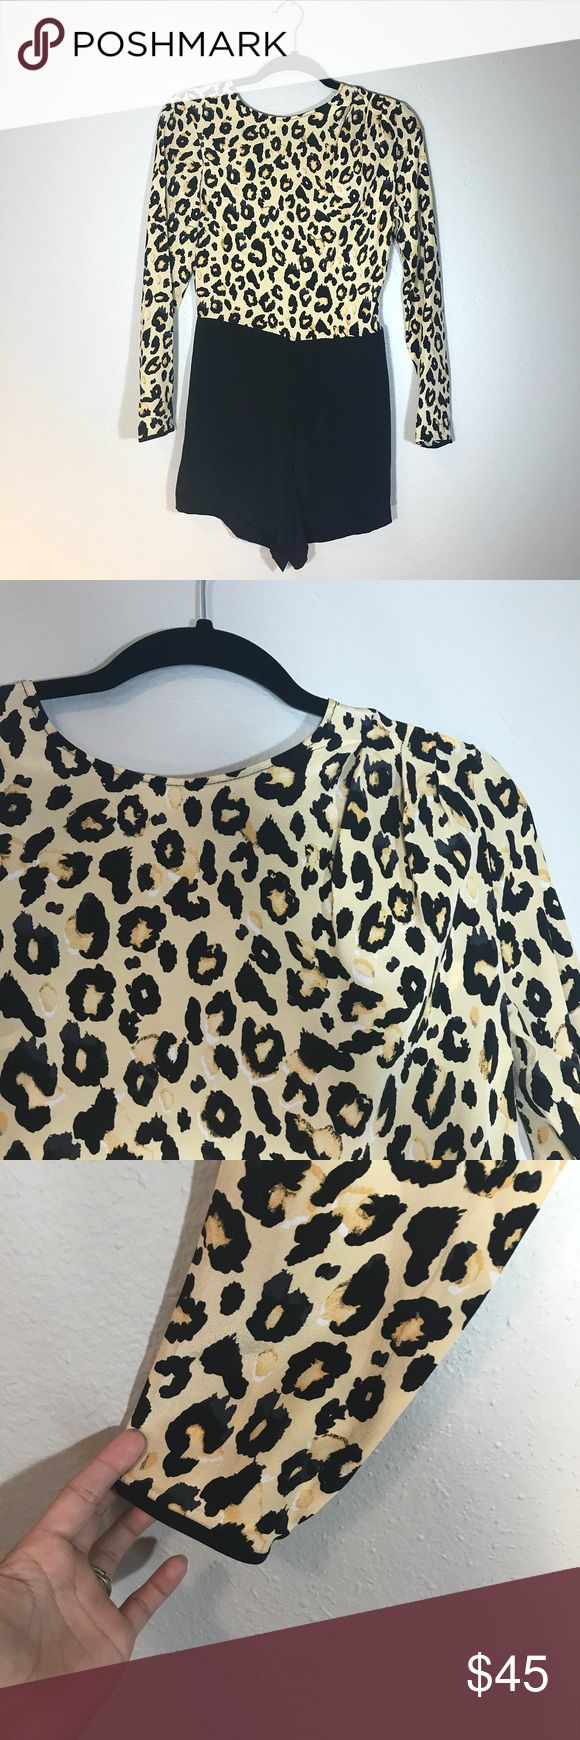 Dolce Vita Amazing Leopard Print Romper Amazing Romper by Dolce Vita. Top has an open back. Back zipper, black bottoms. Excellent condition. No fabric content tag but material is very soft. Not too casual. Dolce Vita Pants Jumpsuits & Rompers